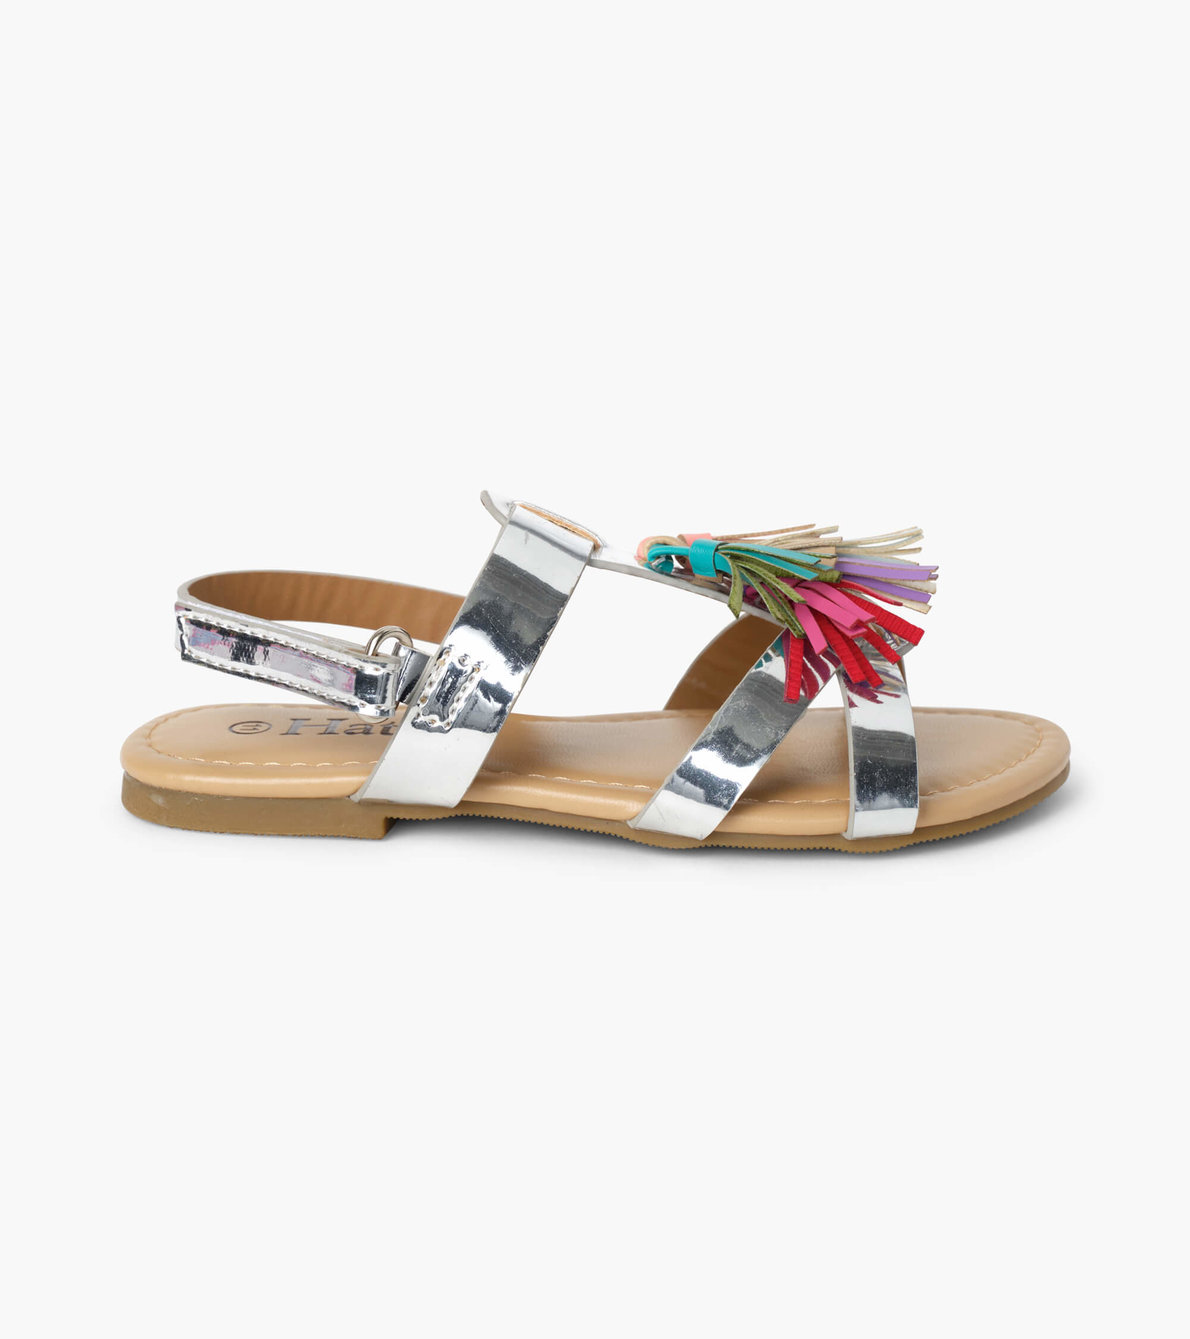 View larger image of Silver Shine Sandals